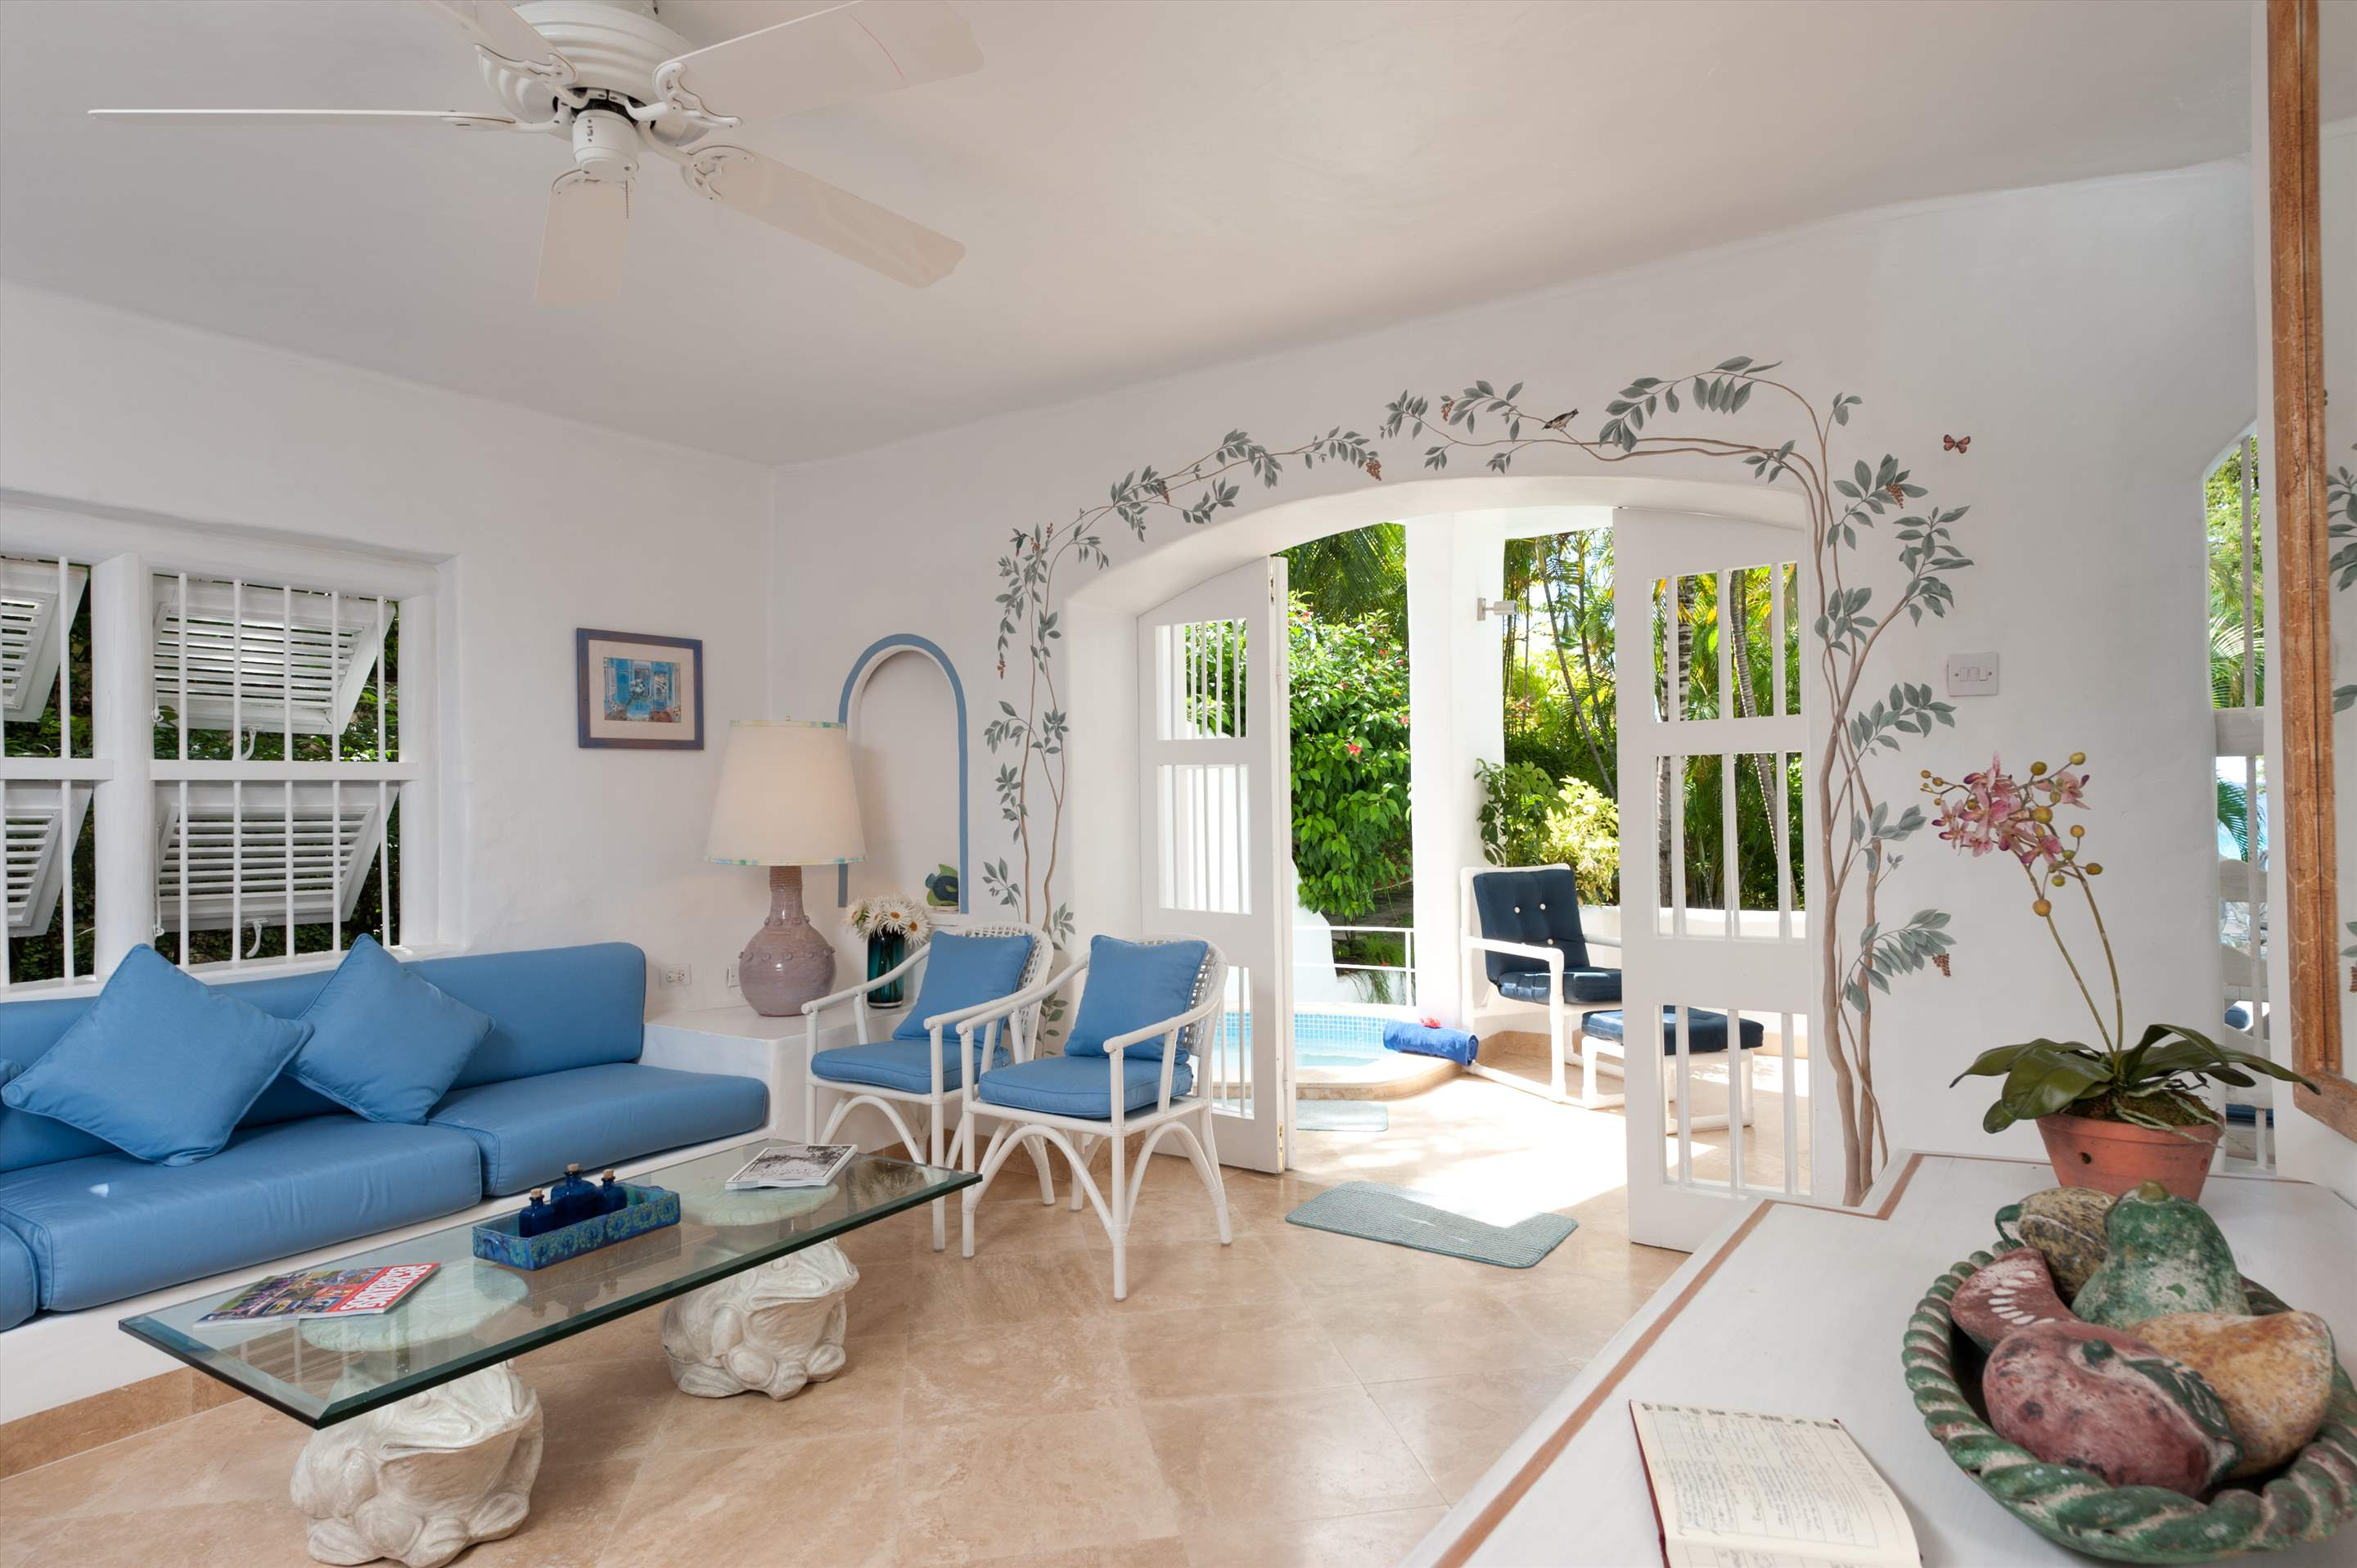 Merlin Bay Gingerbread, 3 bedroom villa in St. James & West Coast, Barbados Photo #4